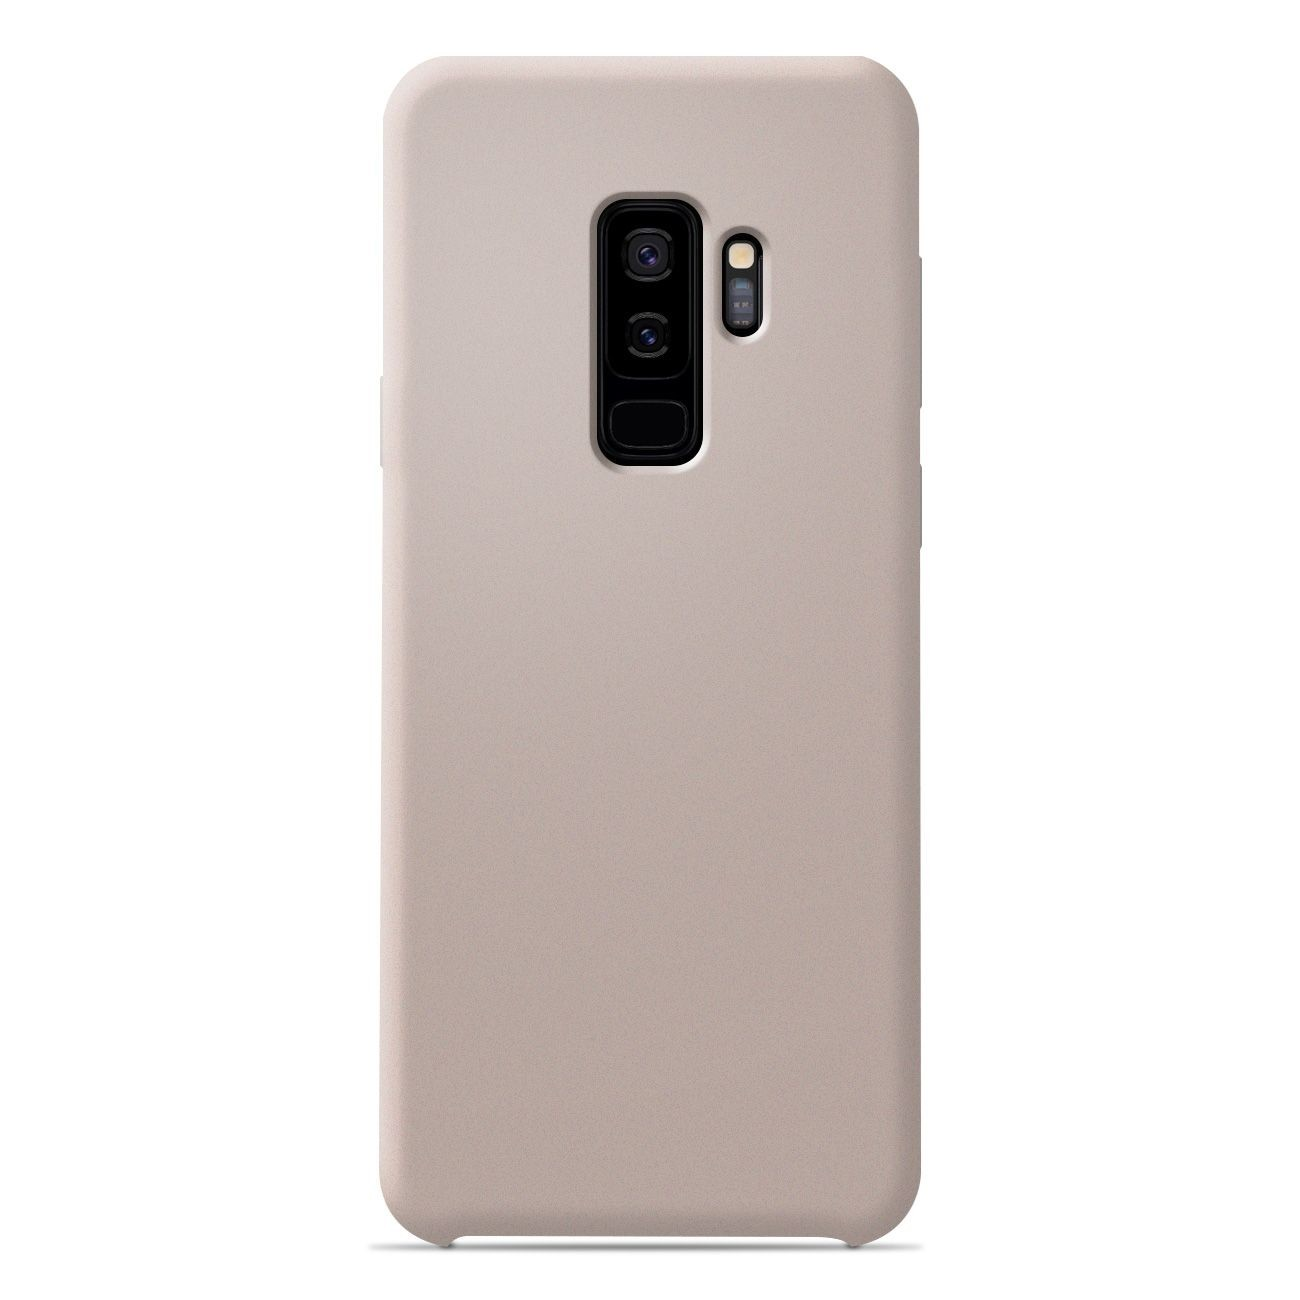 Coque Samsung Galaxy S9 Plus Silicone Soft Touch - Sable rosé